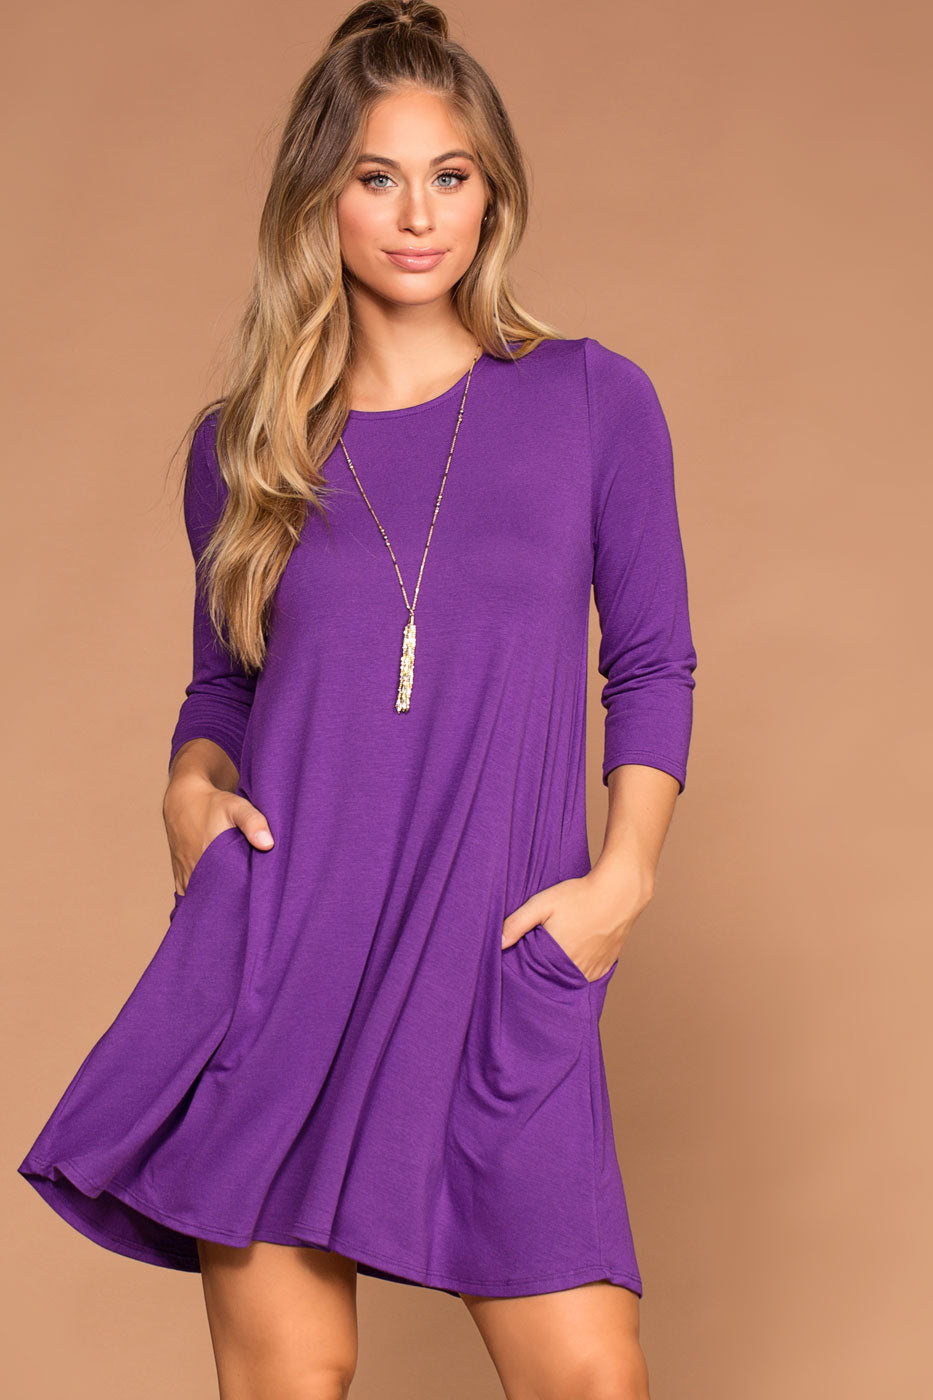 Catching Leaves Swing Pocket Dress - Purple | Zenana